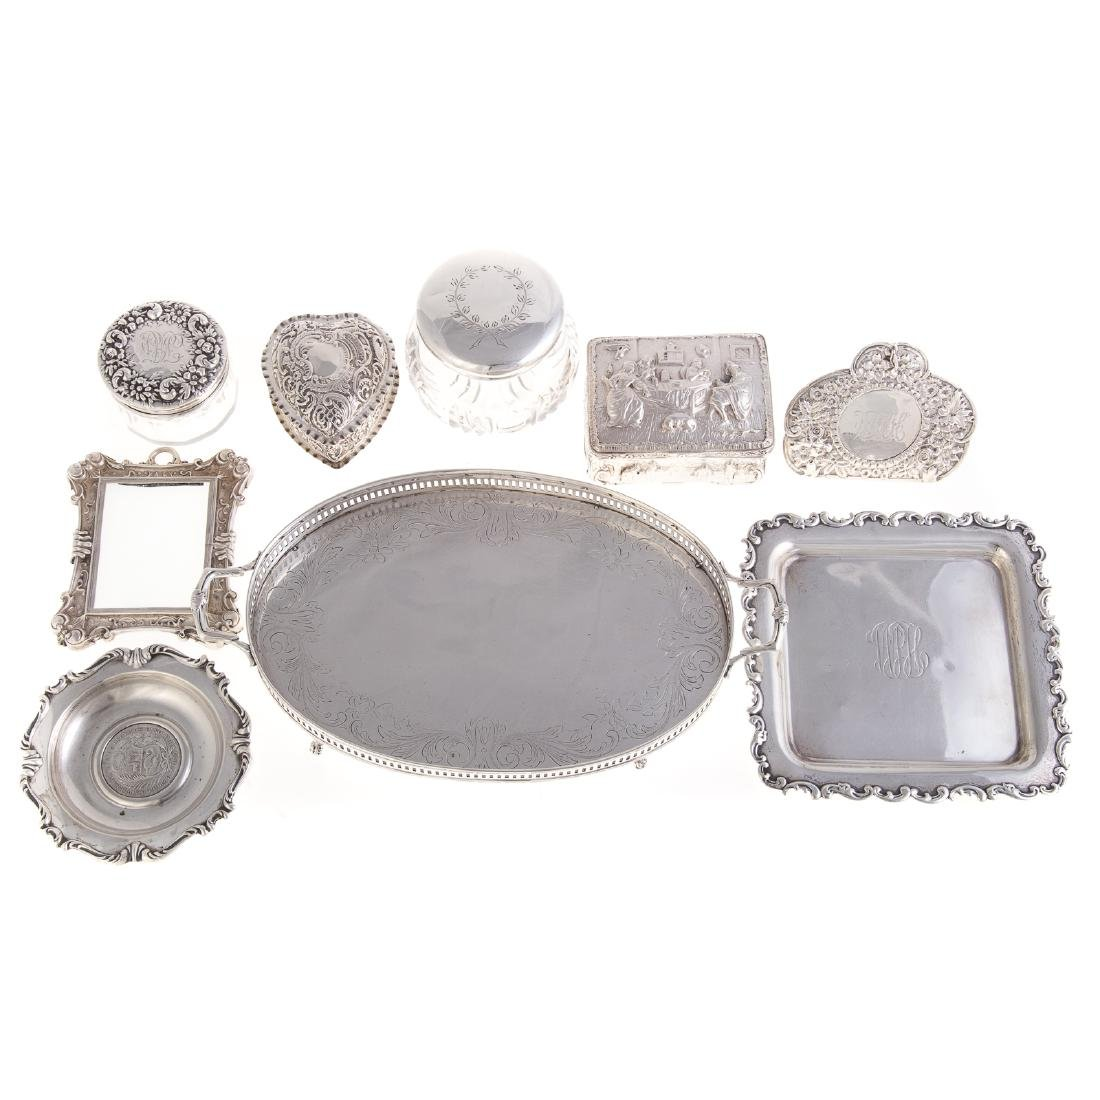 American & Continental silver vanity items